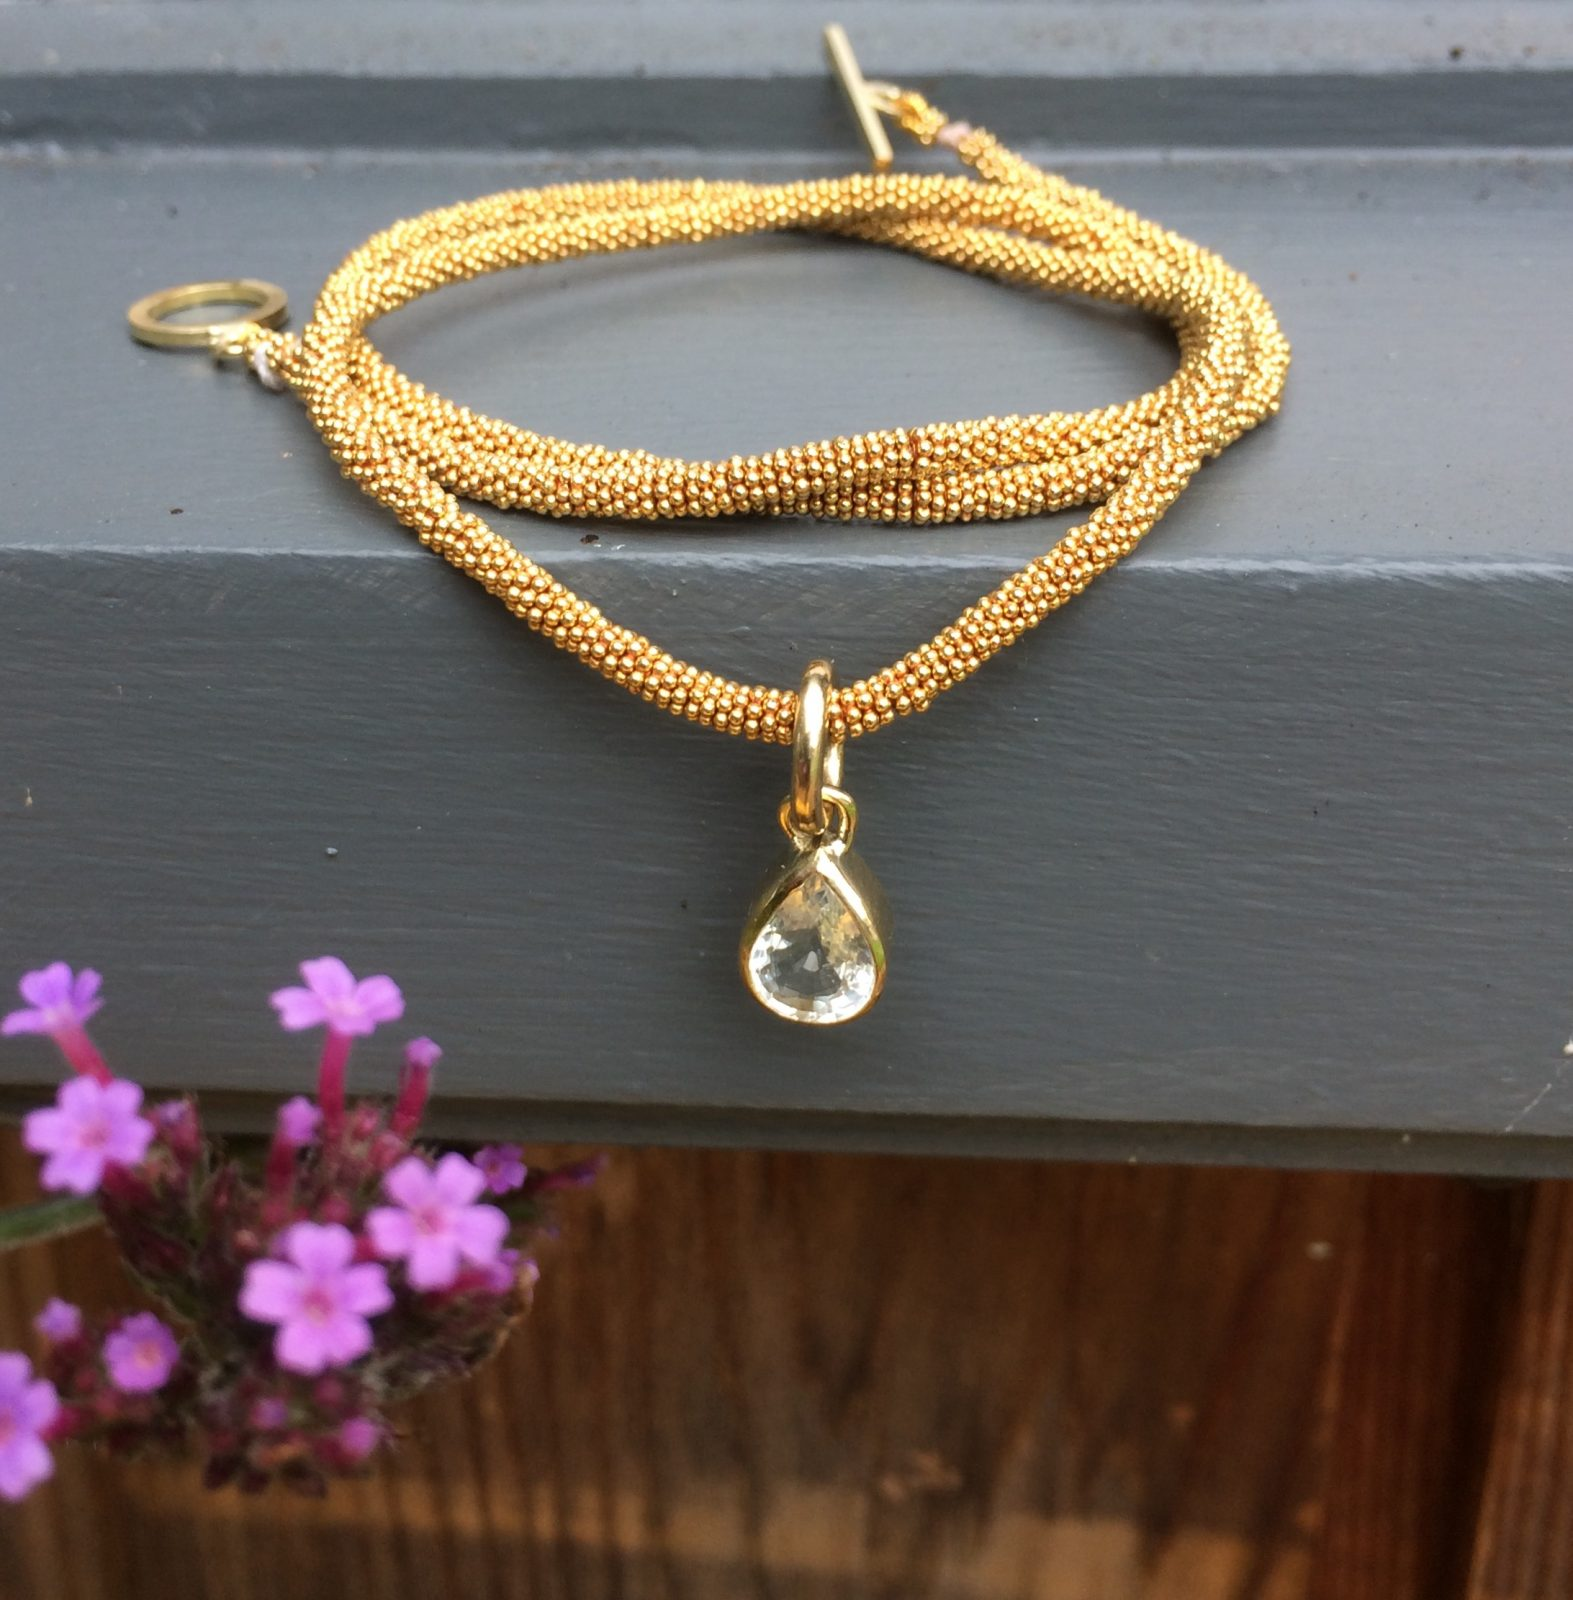 18ct Goldbeaded necklace with white sapphire